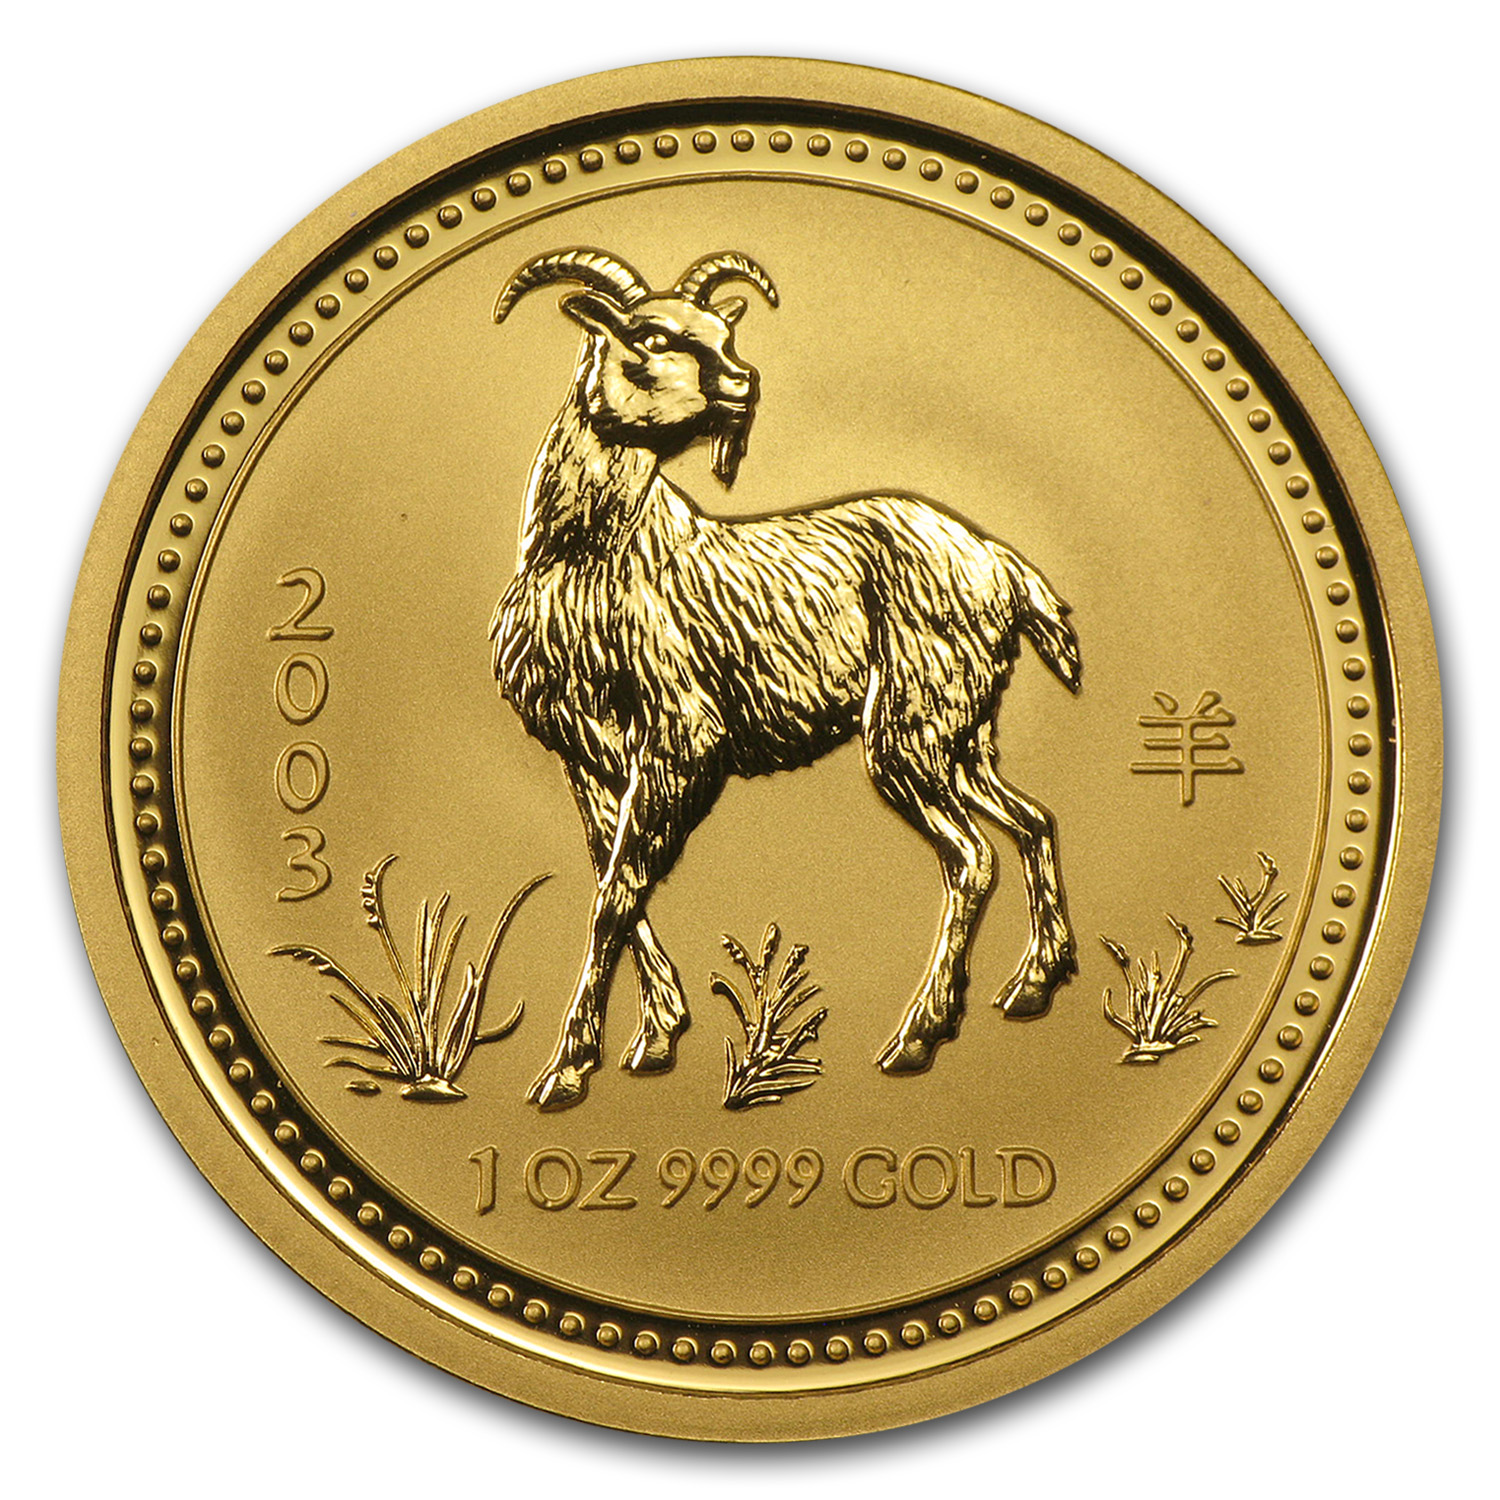 2003 1 oz Gold Year of the Goat Lunar Coin (Series I)